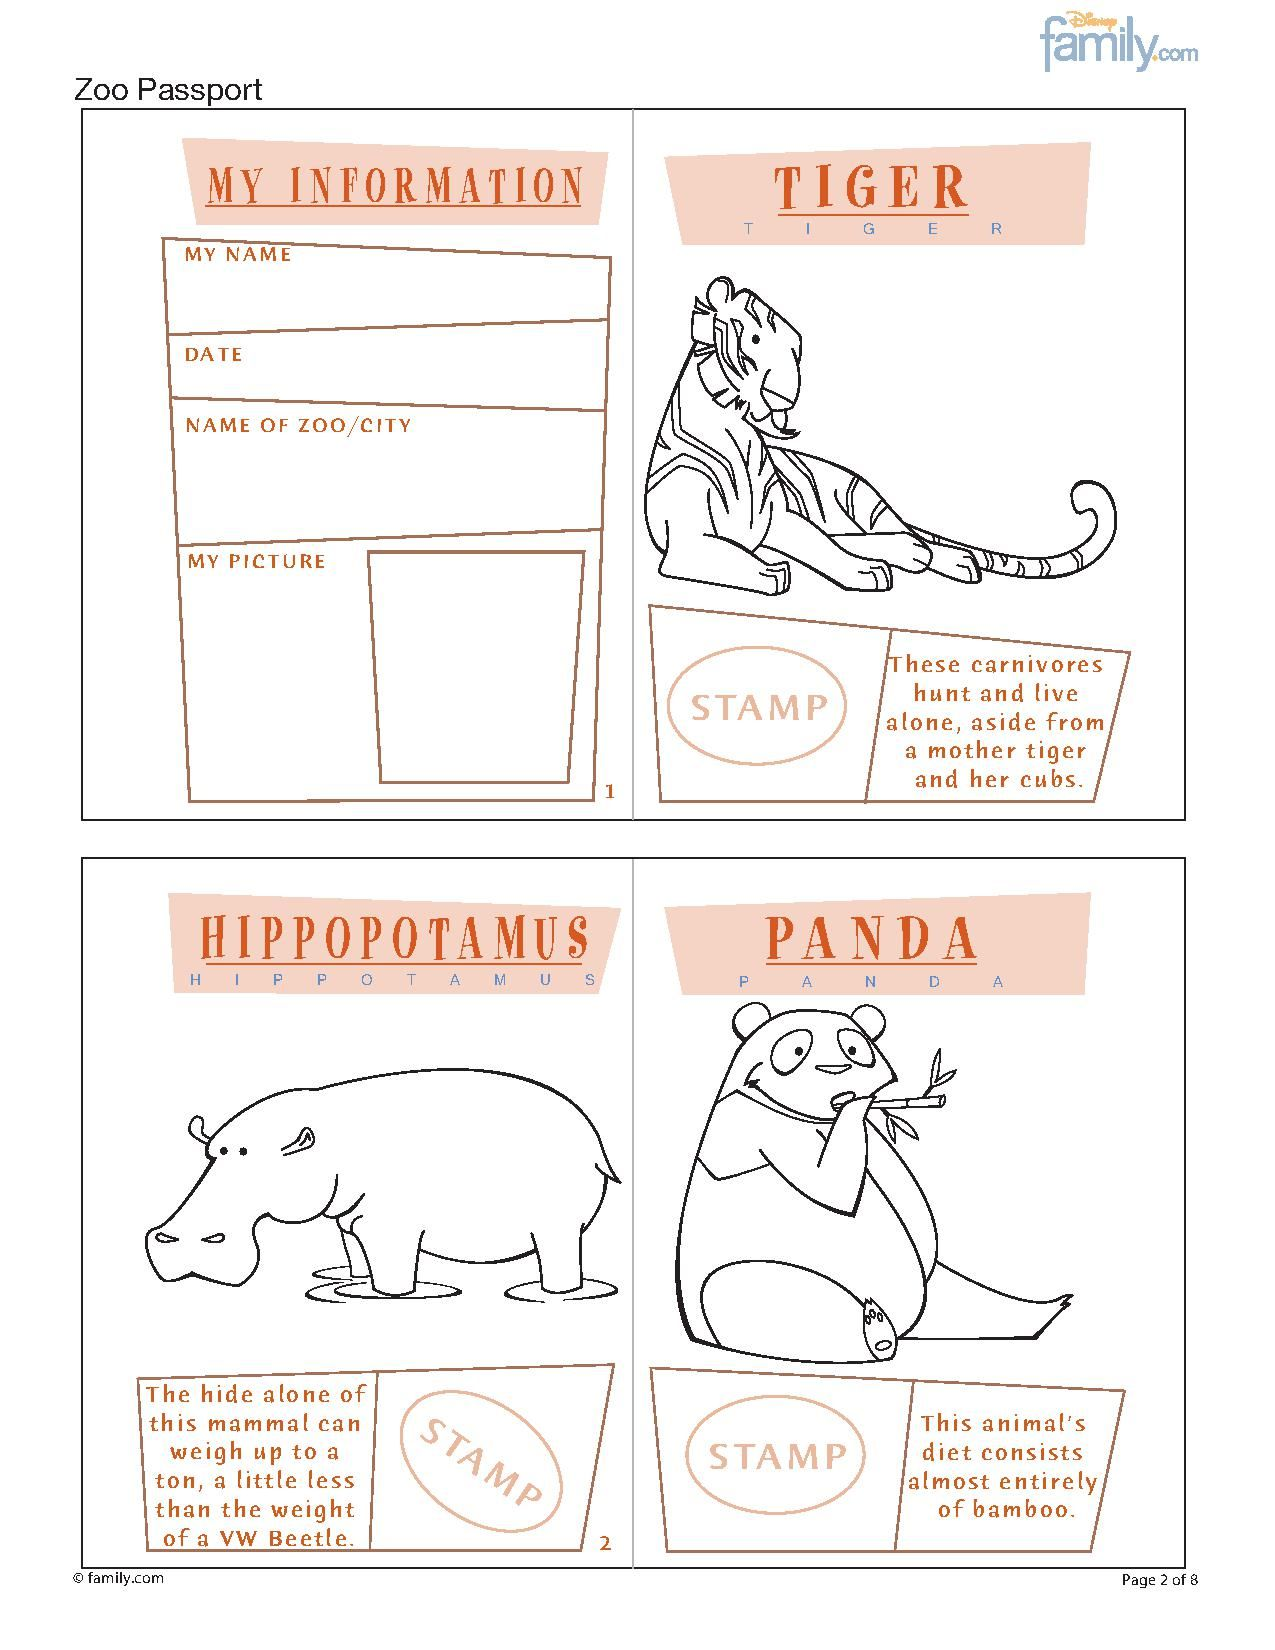 Zoo printable passport for kids page 1 i wanna go zoo printable passport for kids pronofoot35fo Image collections